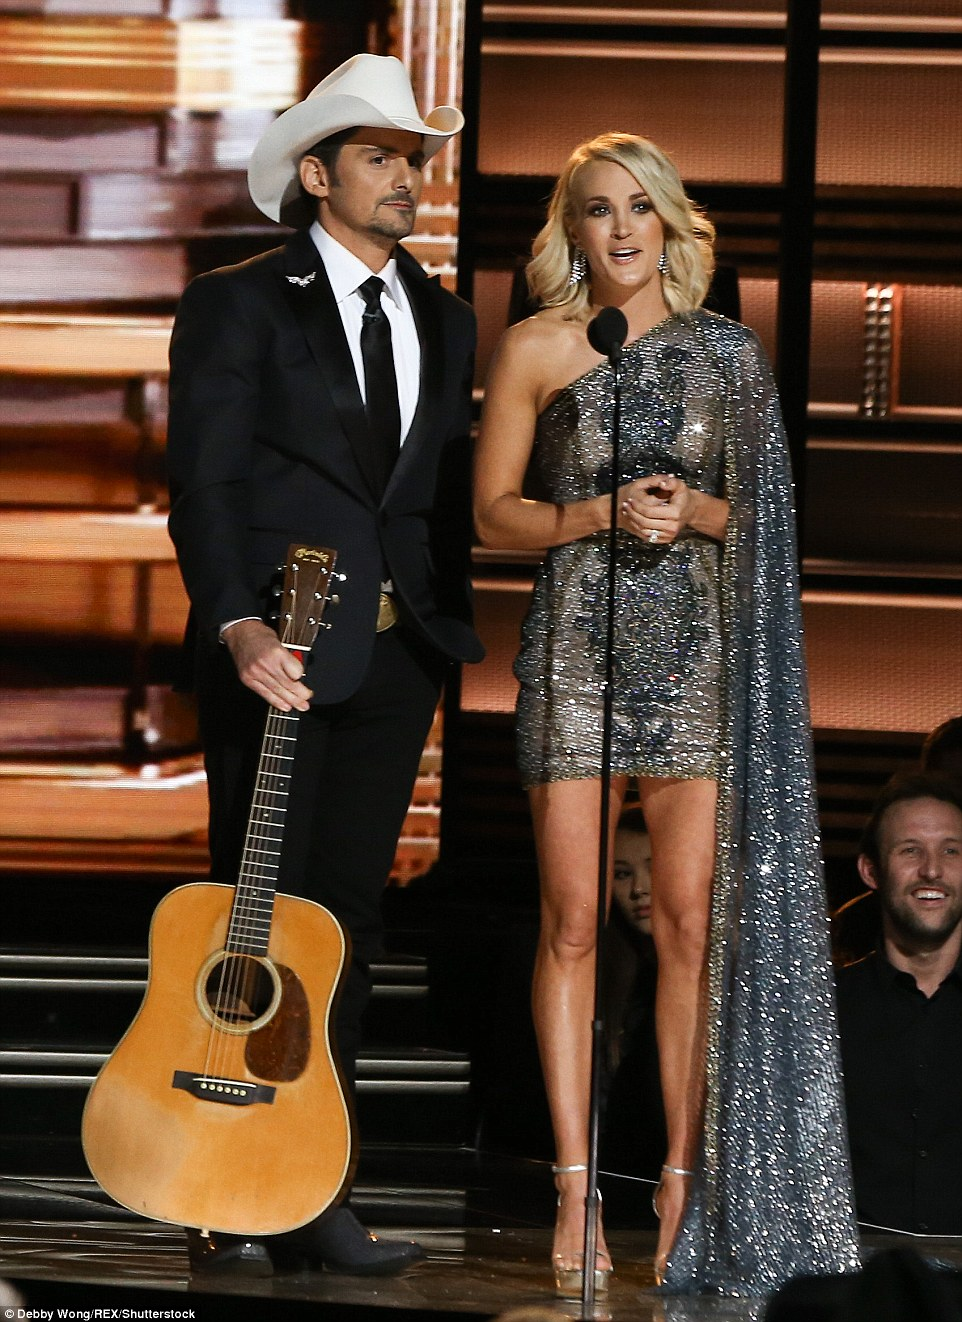 Dynamic Duo: Carrie Underwood and Brad Paisley looked great as they hostedthe 50th Annual CMA Awards on Wednesday night